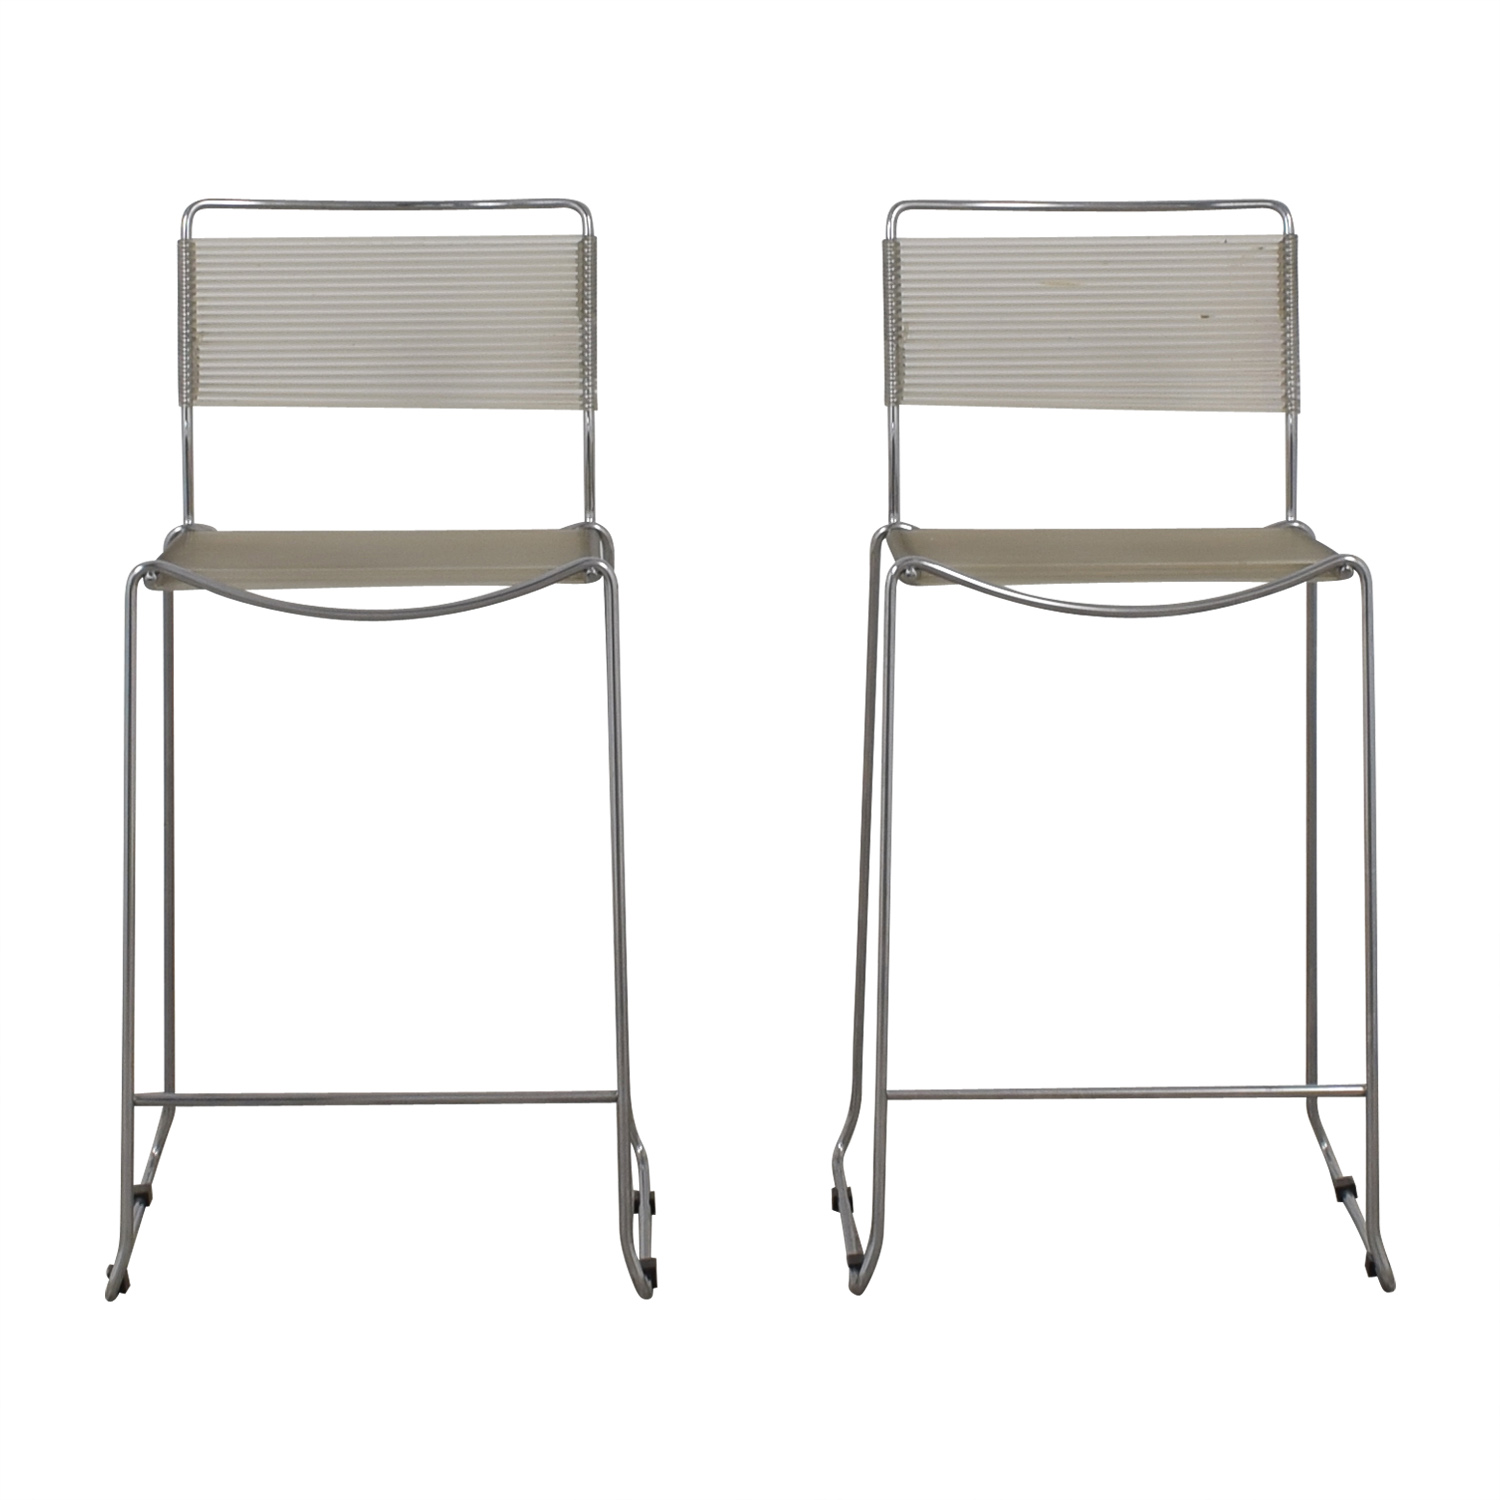 White and Chrome Stools White/metal